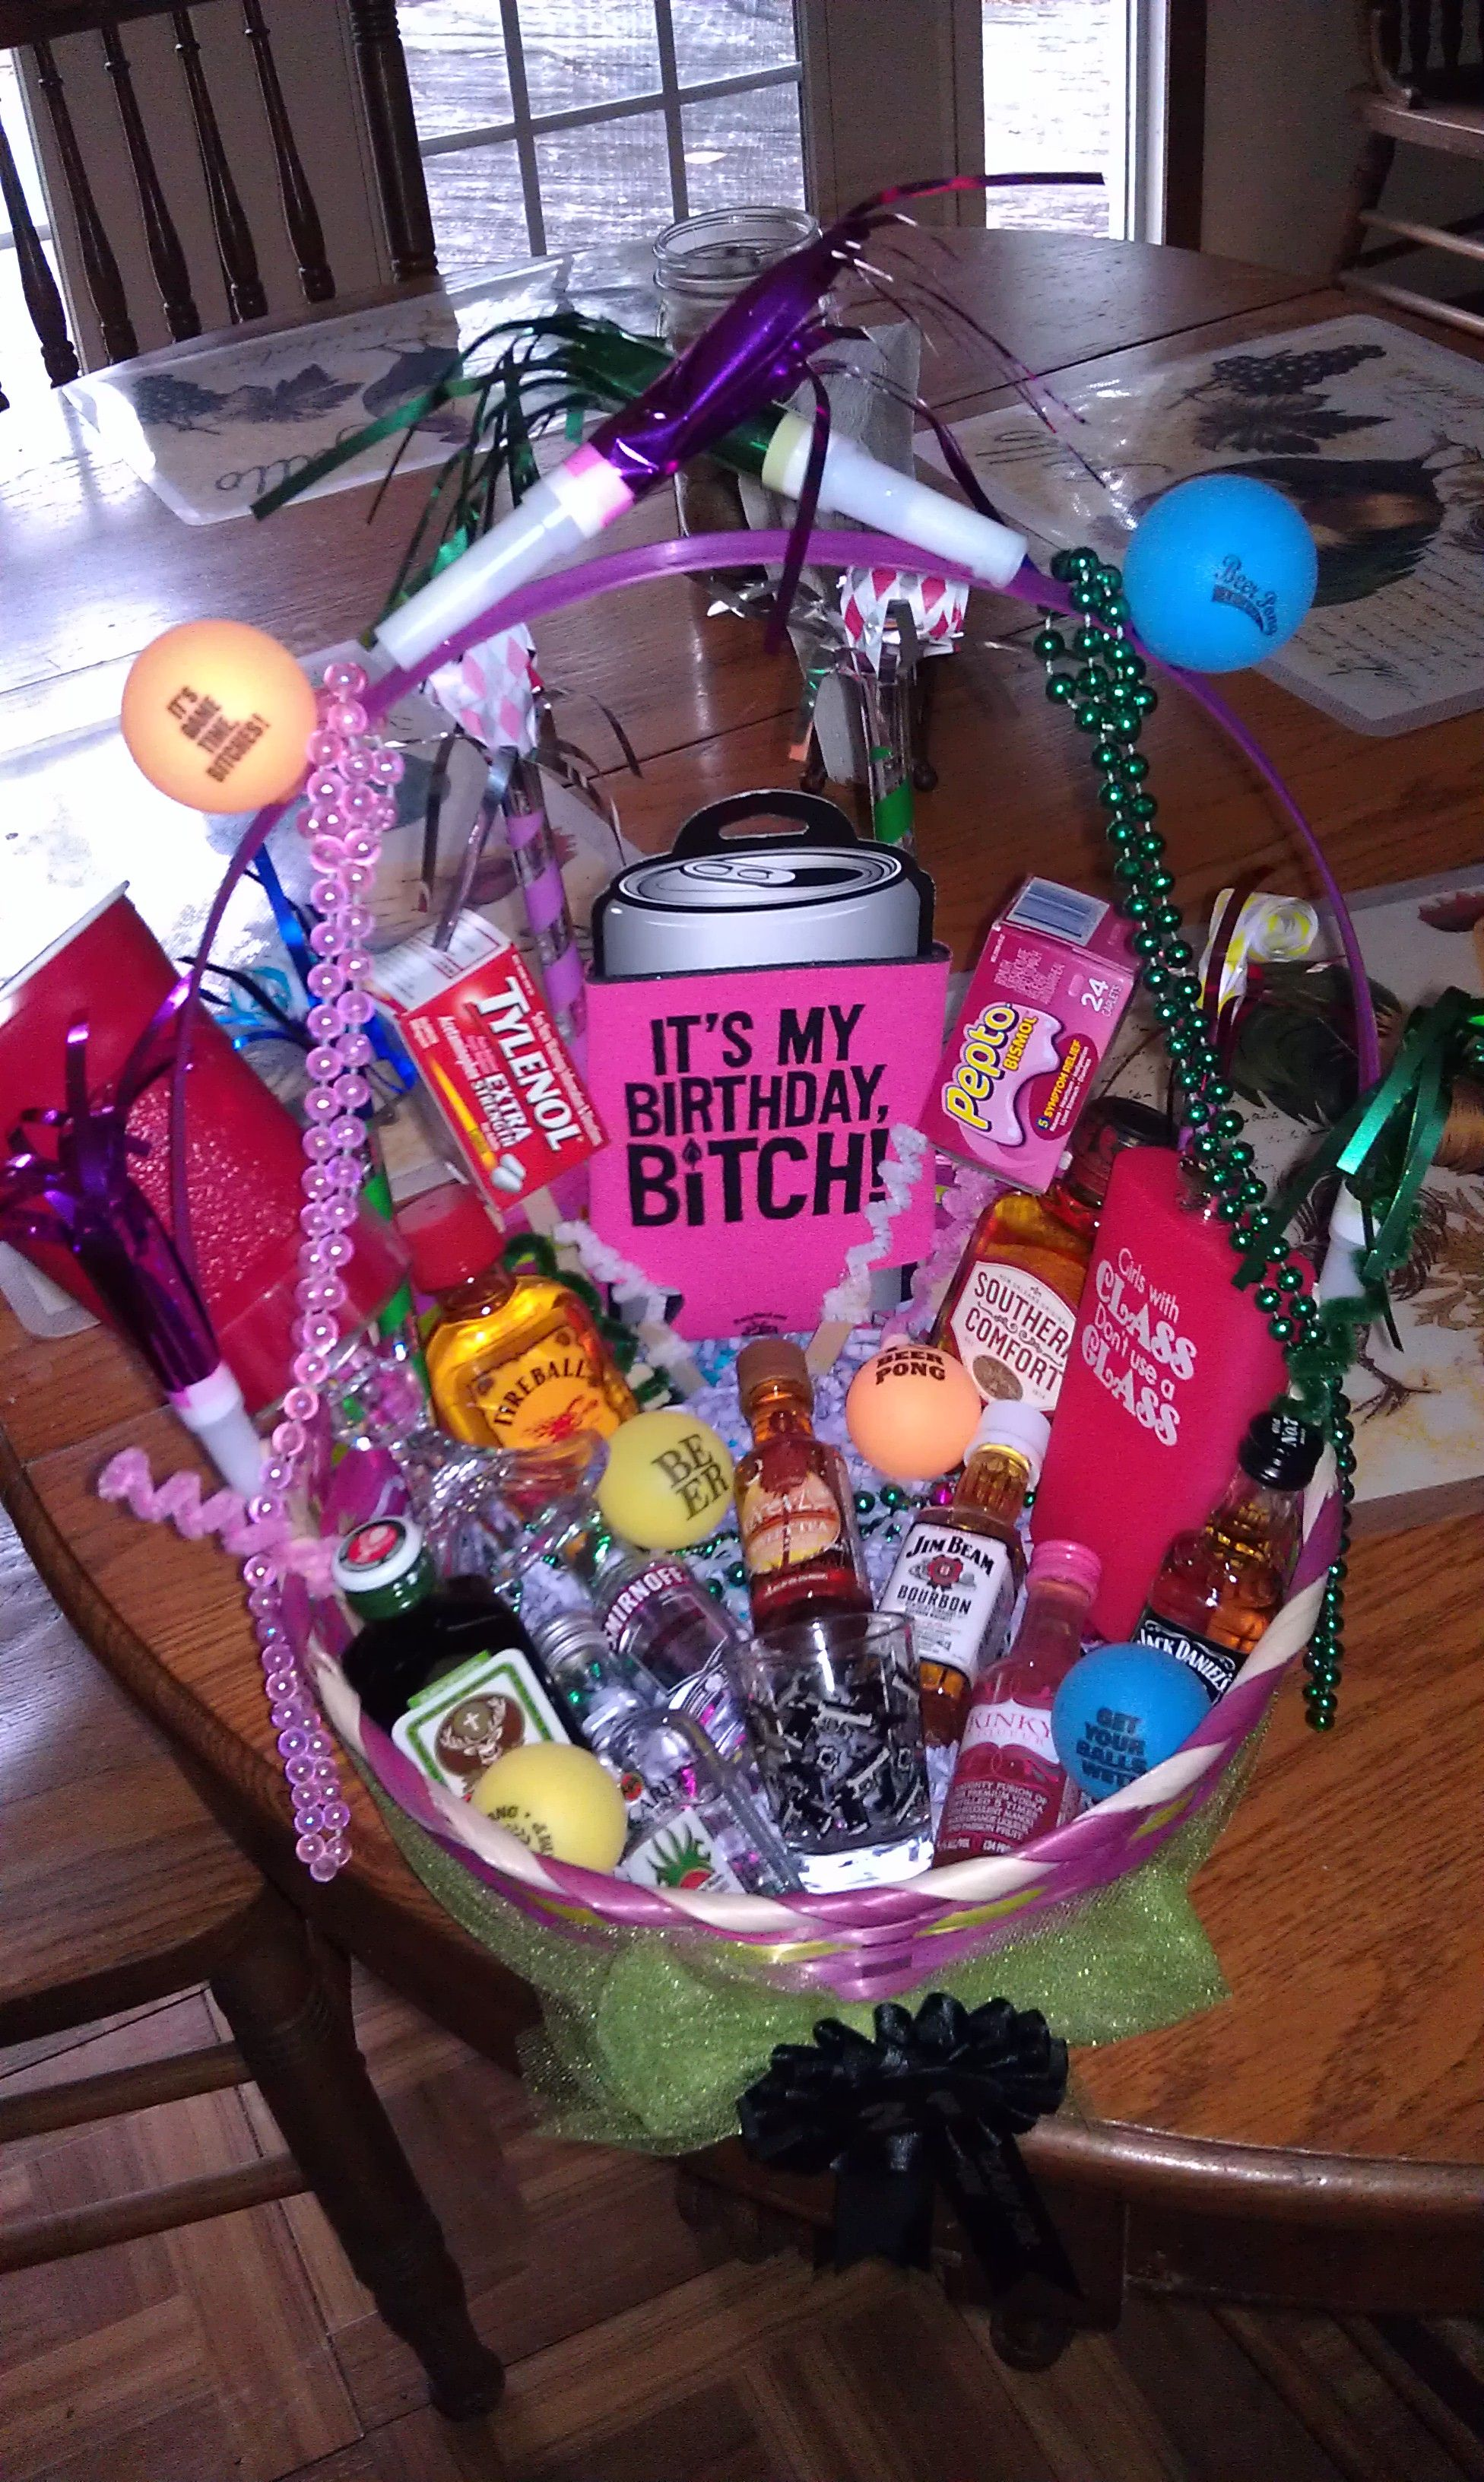 21st Birthday Basket I Want This Love It SOMEONE MAKE THIS FOR ME Next July Please